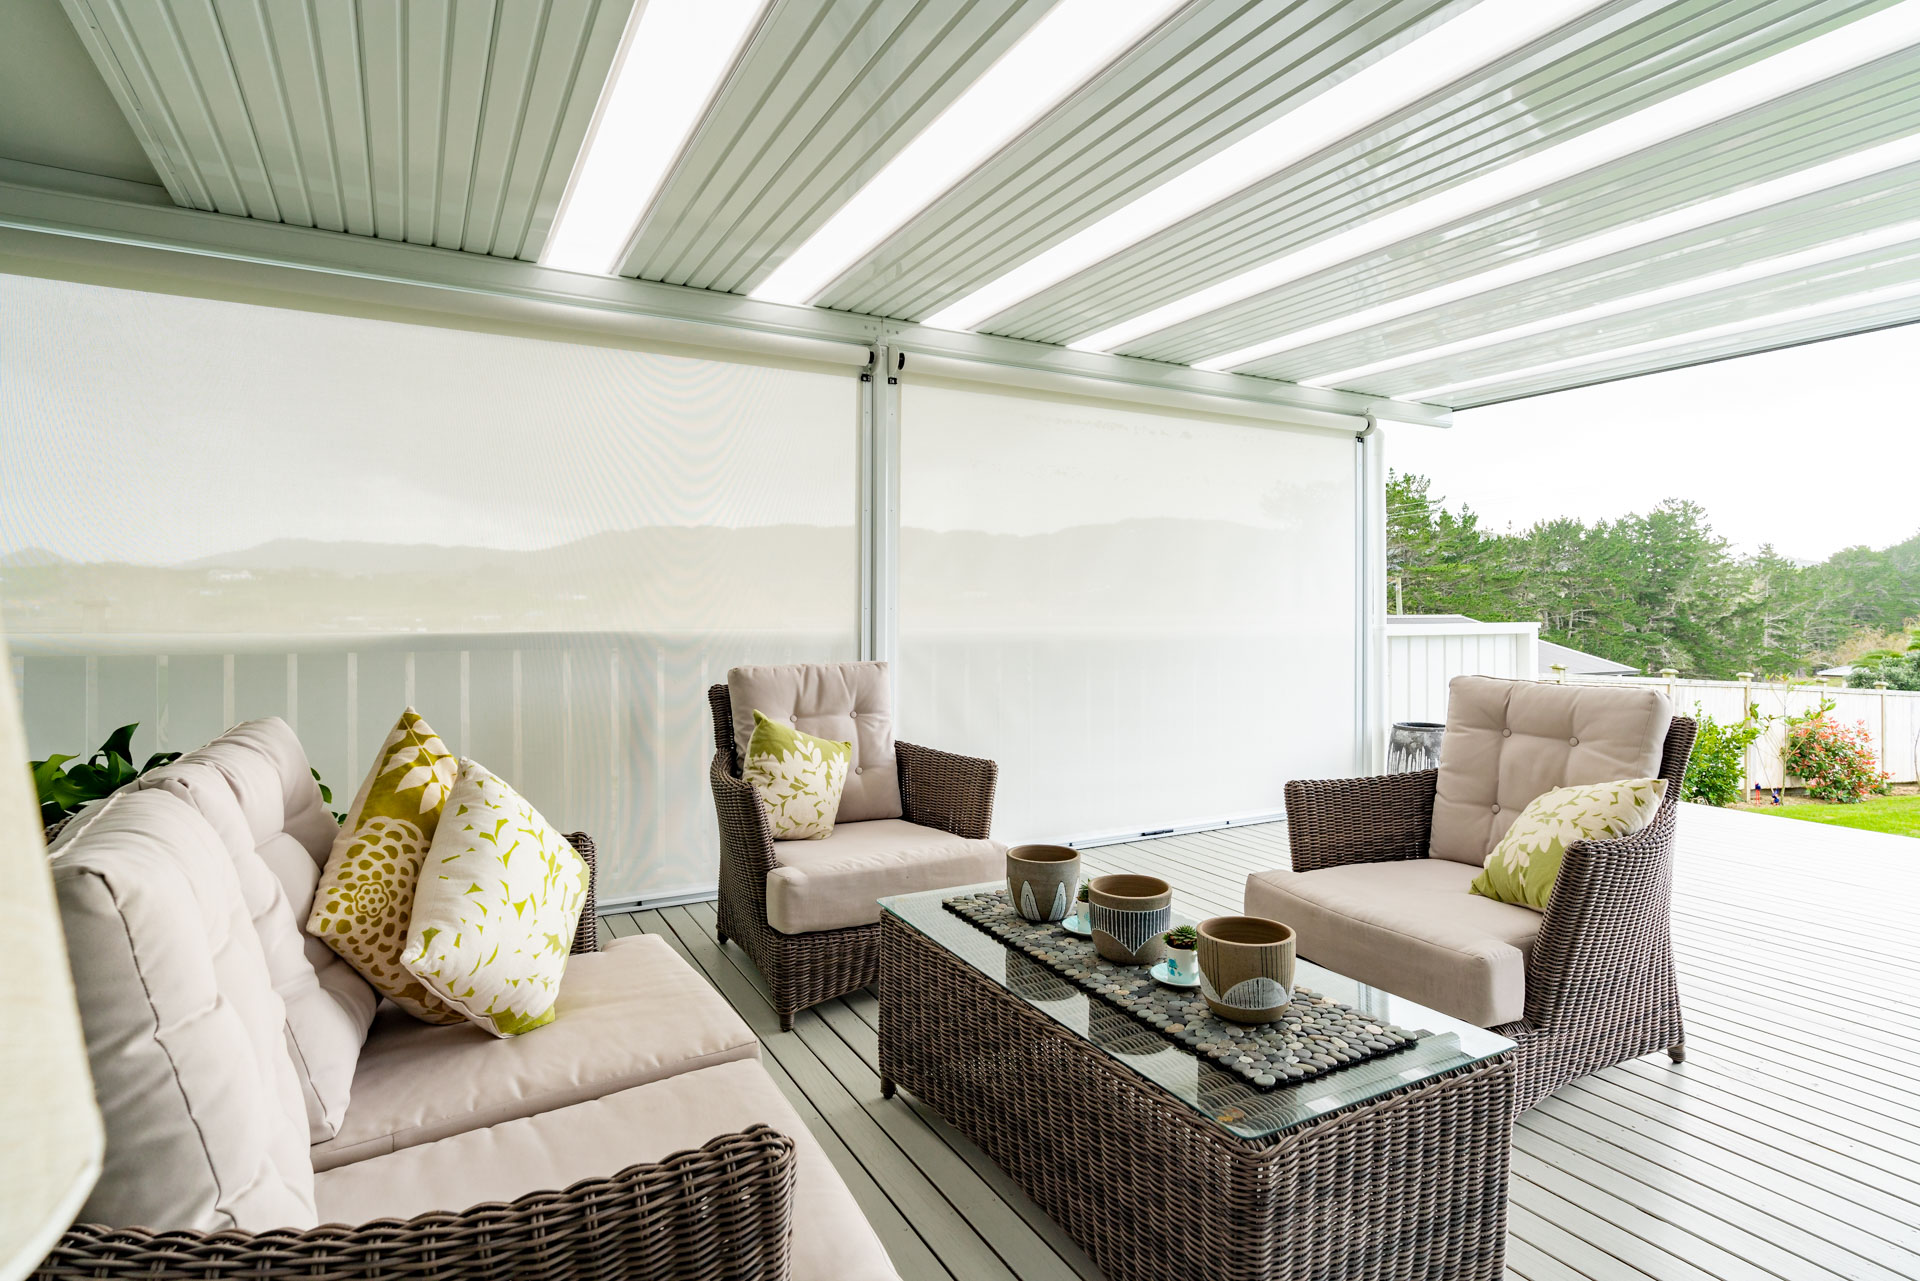 An outdoor deck area with table and chairs is covered by a flat roof and enclosed with outdoor blinds